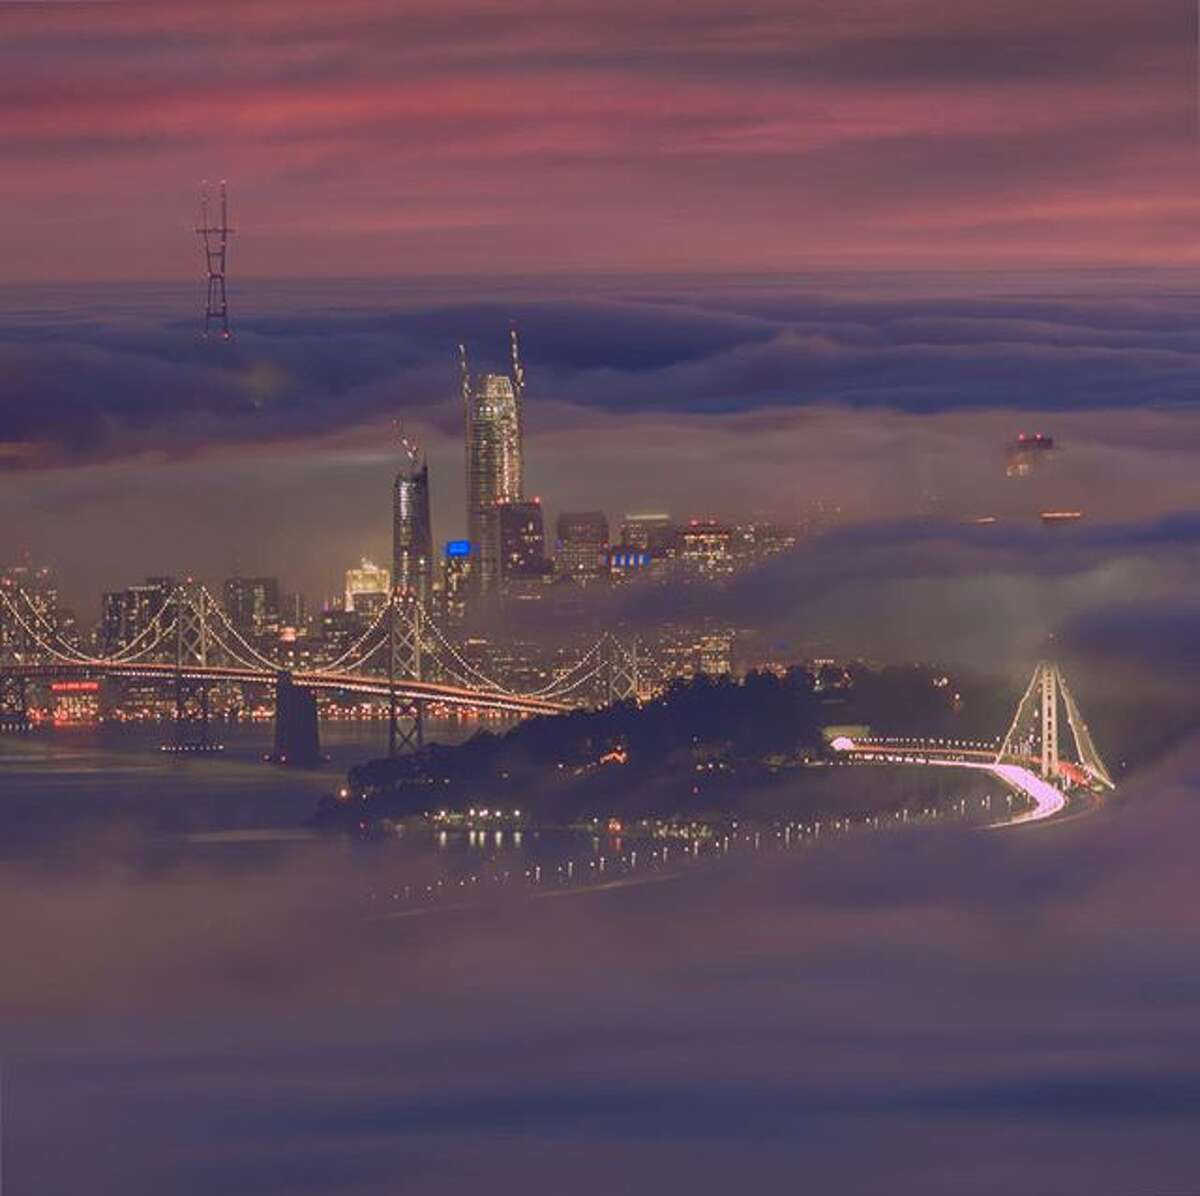 @gcp19 titled his photo from Grizzly Peak in SF